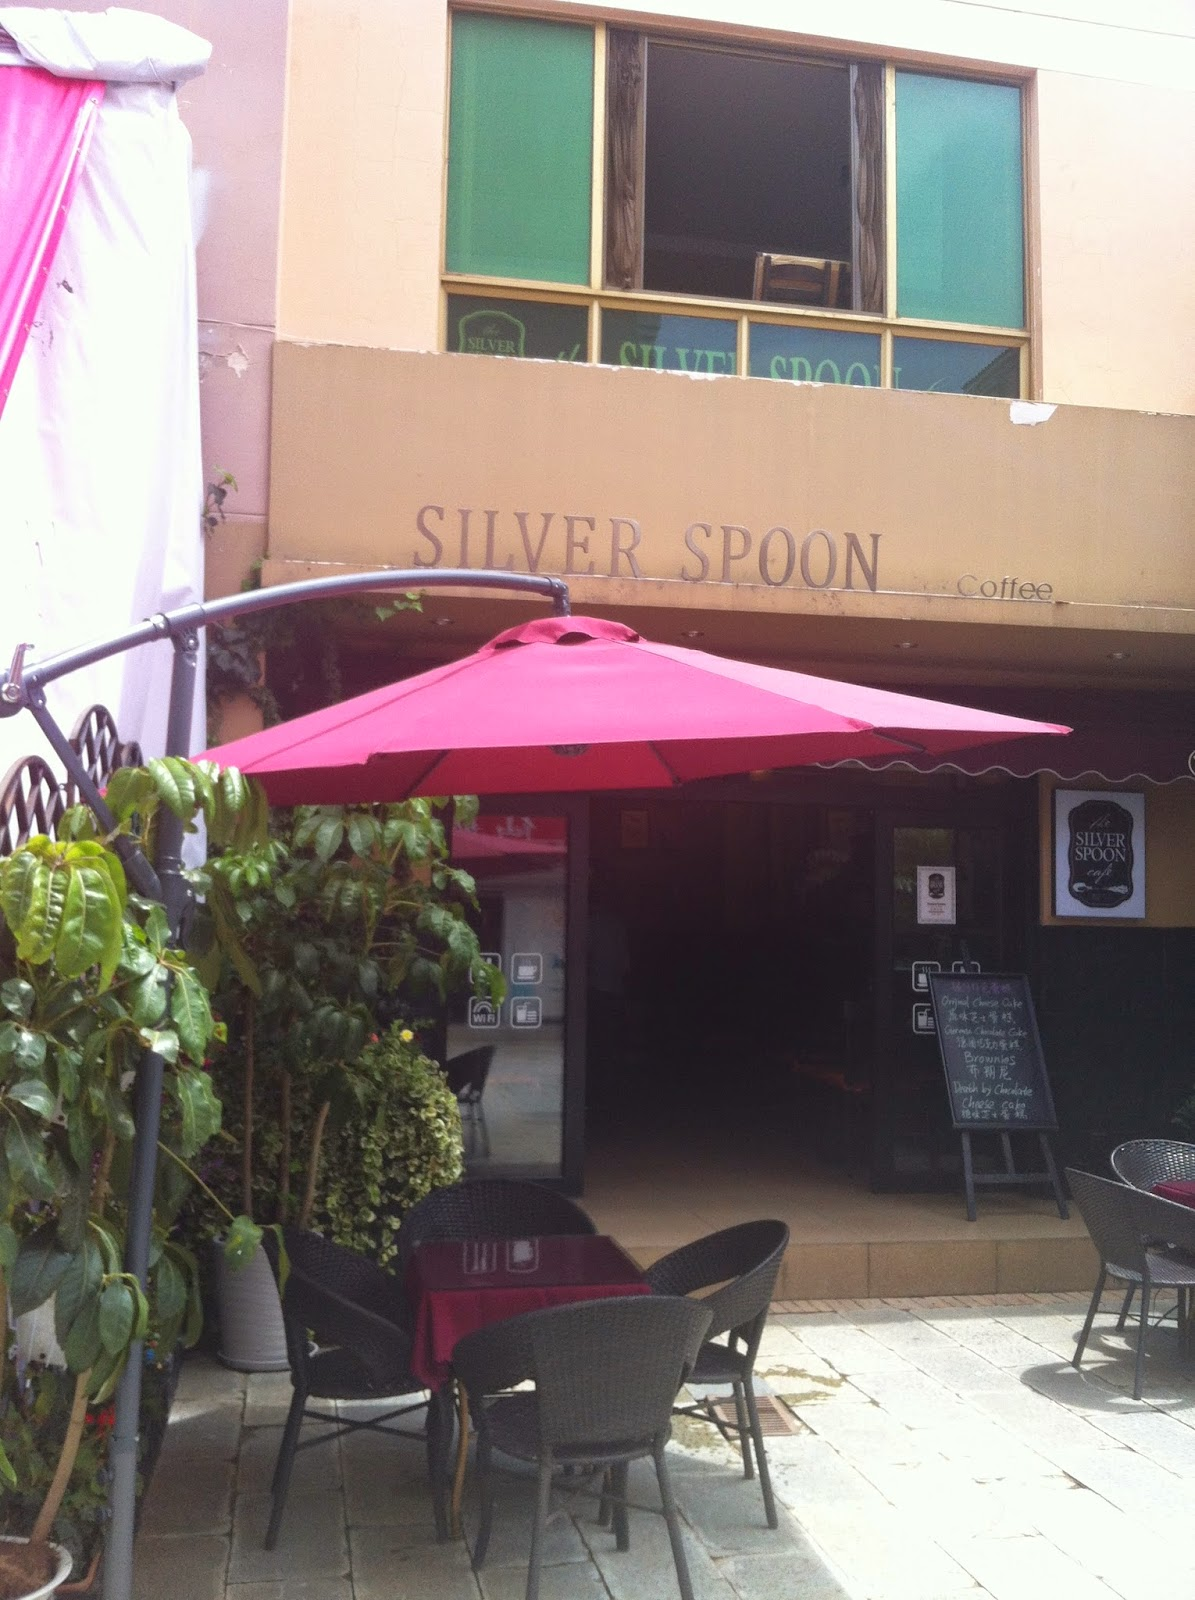 The Silver Spoon Cafe in Kunming